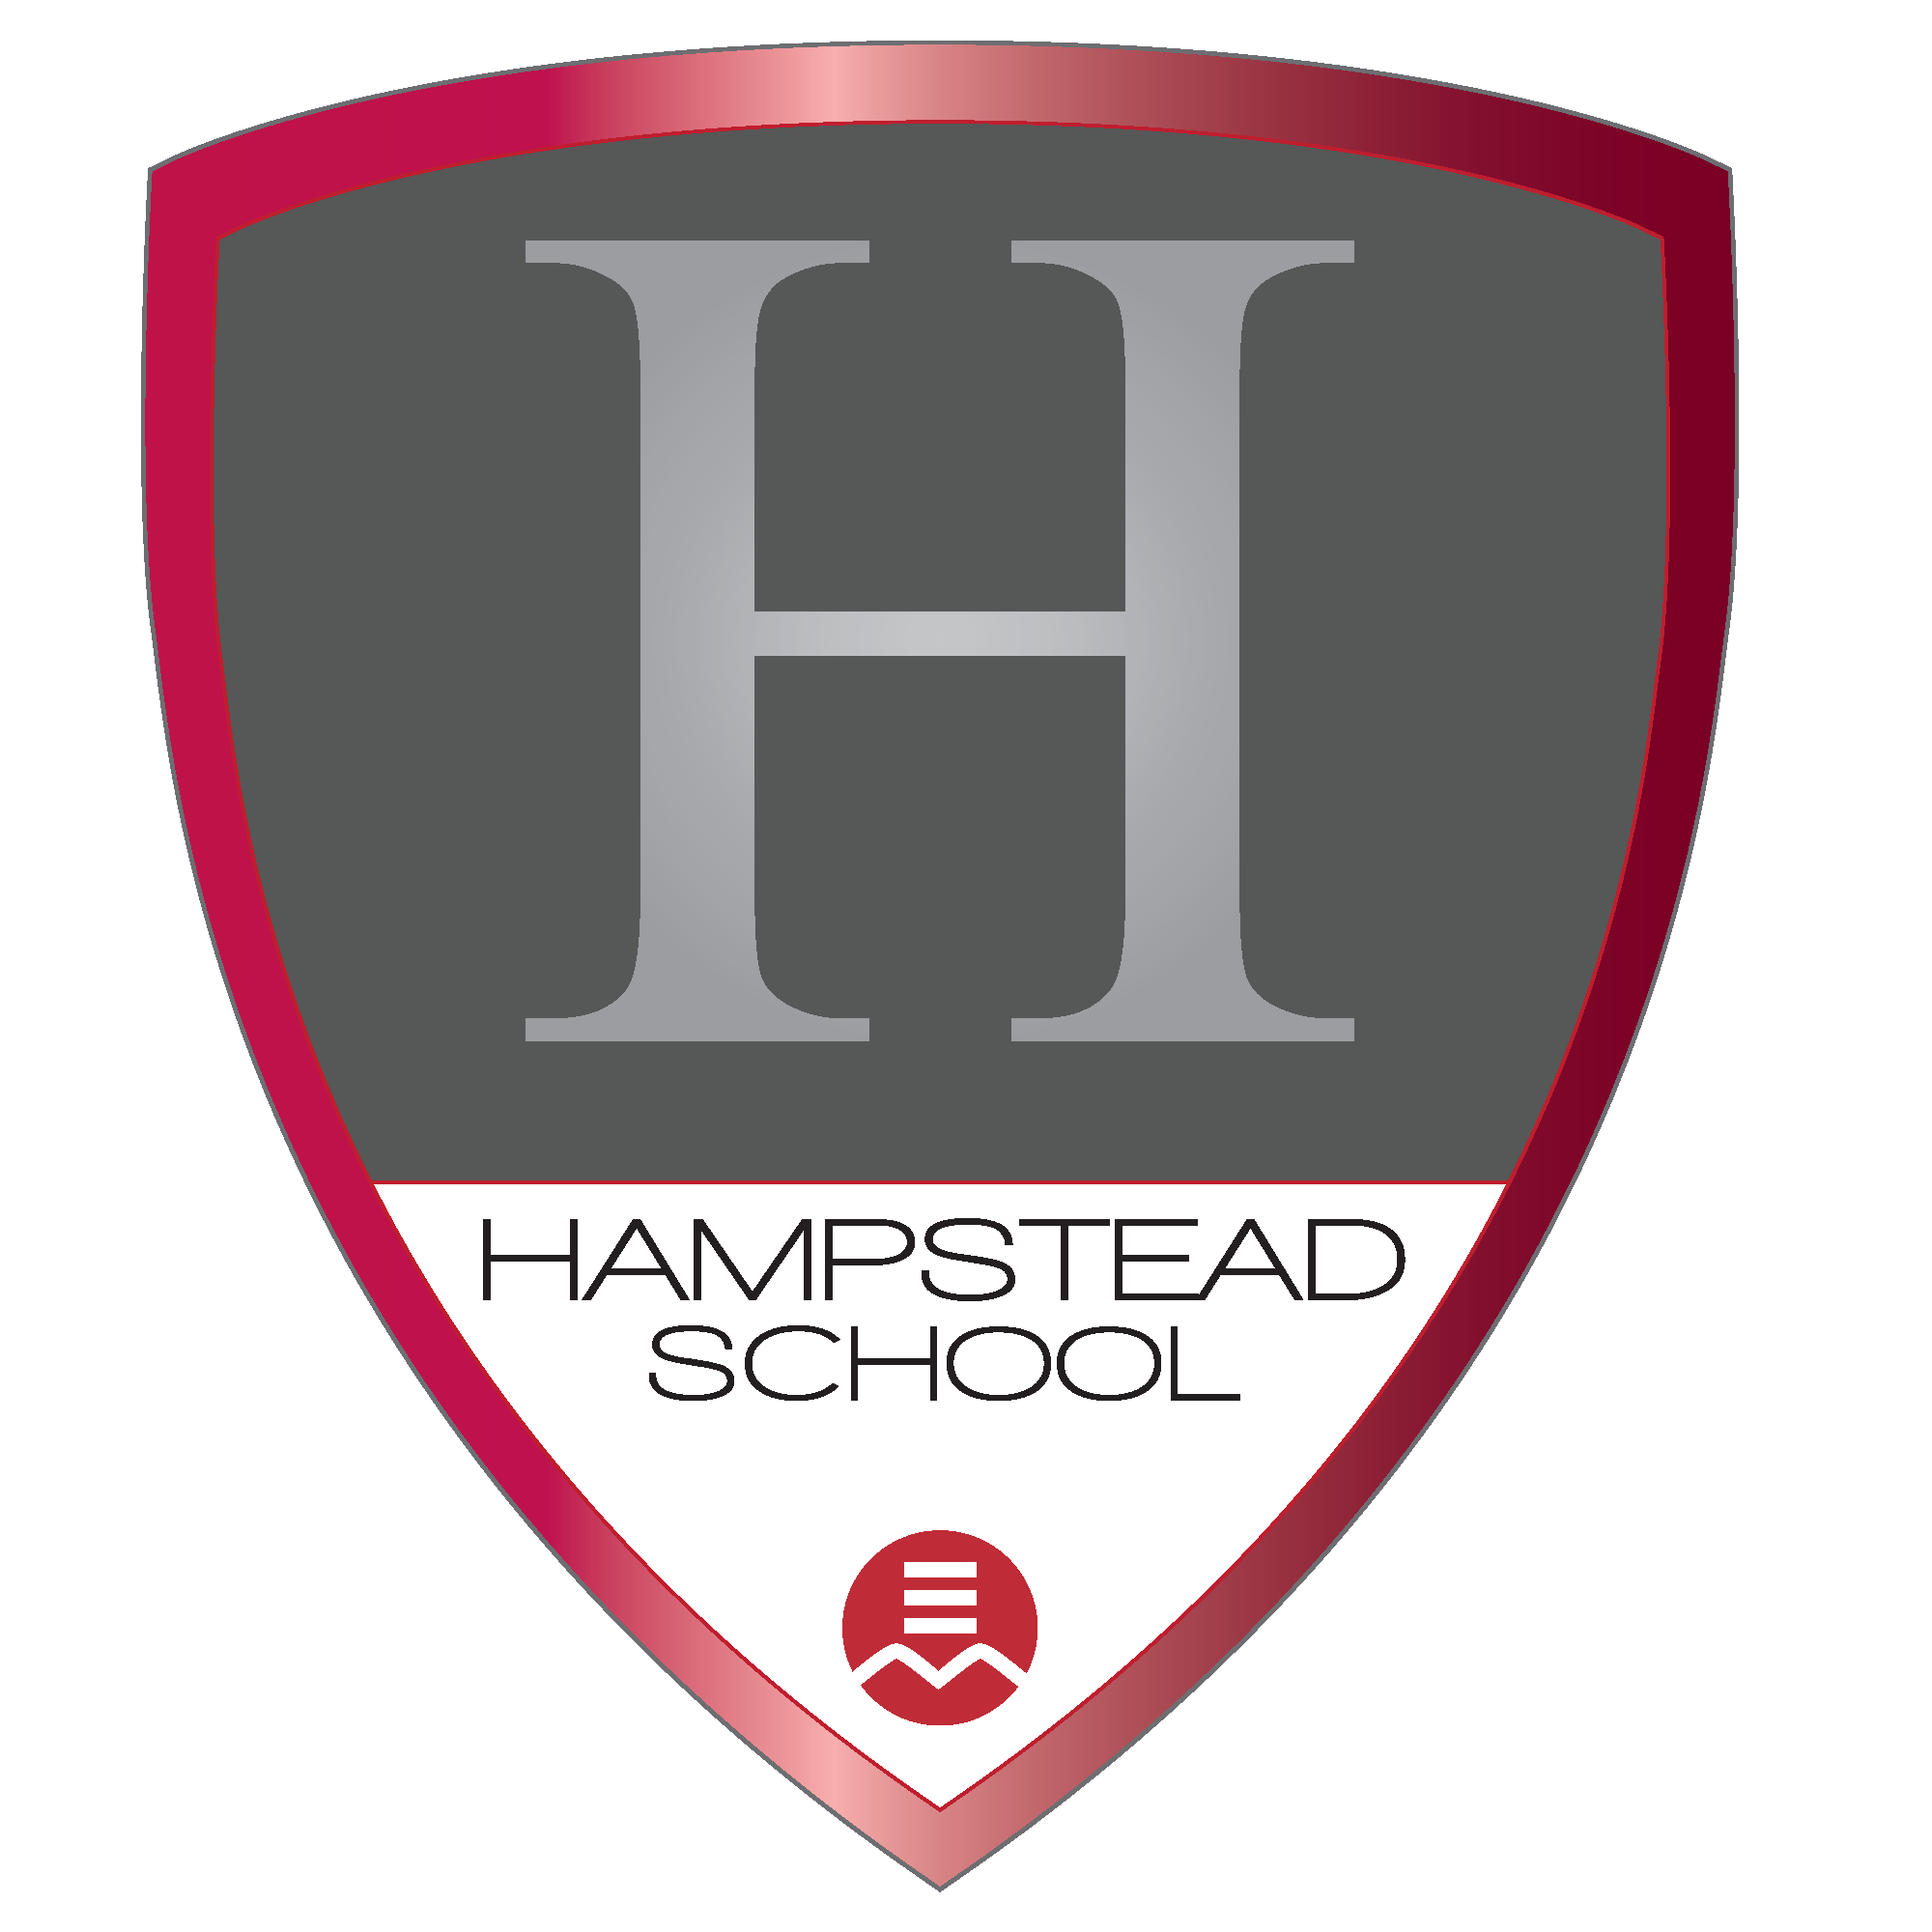 Hampstead school